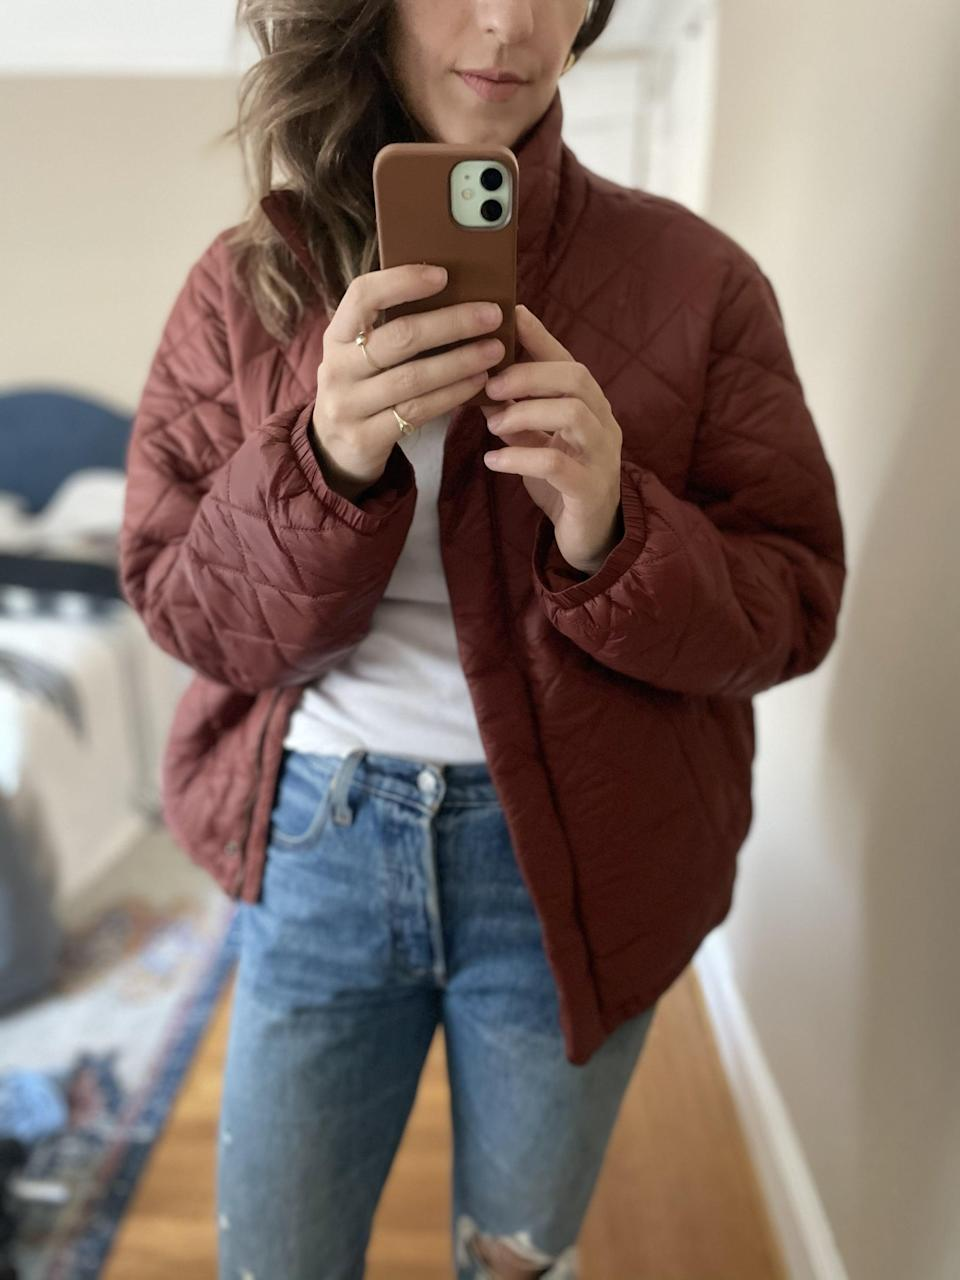 """<p><strong>The item:</strong> <span>Lightweight Diamond-Quilted Nylon Puffer Jacket</span> ($47, originally $50)</p> <p><strong>What our editor said: </strong>""""This is such a classic fall look that I can get used to wearing daily. The jacket is nice and oversize, and has sort of a boxy cut. I liked wearing it with medium-rinse vintage jeans because I knew the rich copper color would really pop against the blue."""" - Rebecca Brown, senior contributing editor</p> <p>If you want to read more, here is the <a href=""""https://www.popsugar.com/fashion/best-puffer-jacket-from-old-navy-editor-review-48056533"""" class=""""link rapid-noclick-resp"""" rel=""""nofollow noopener"""" target=""""_blank"""" data-ylk=""""slk:complete review"""">complete review</a>.</p>"""